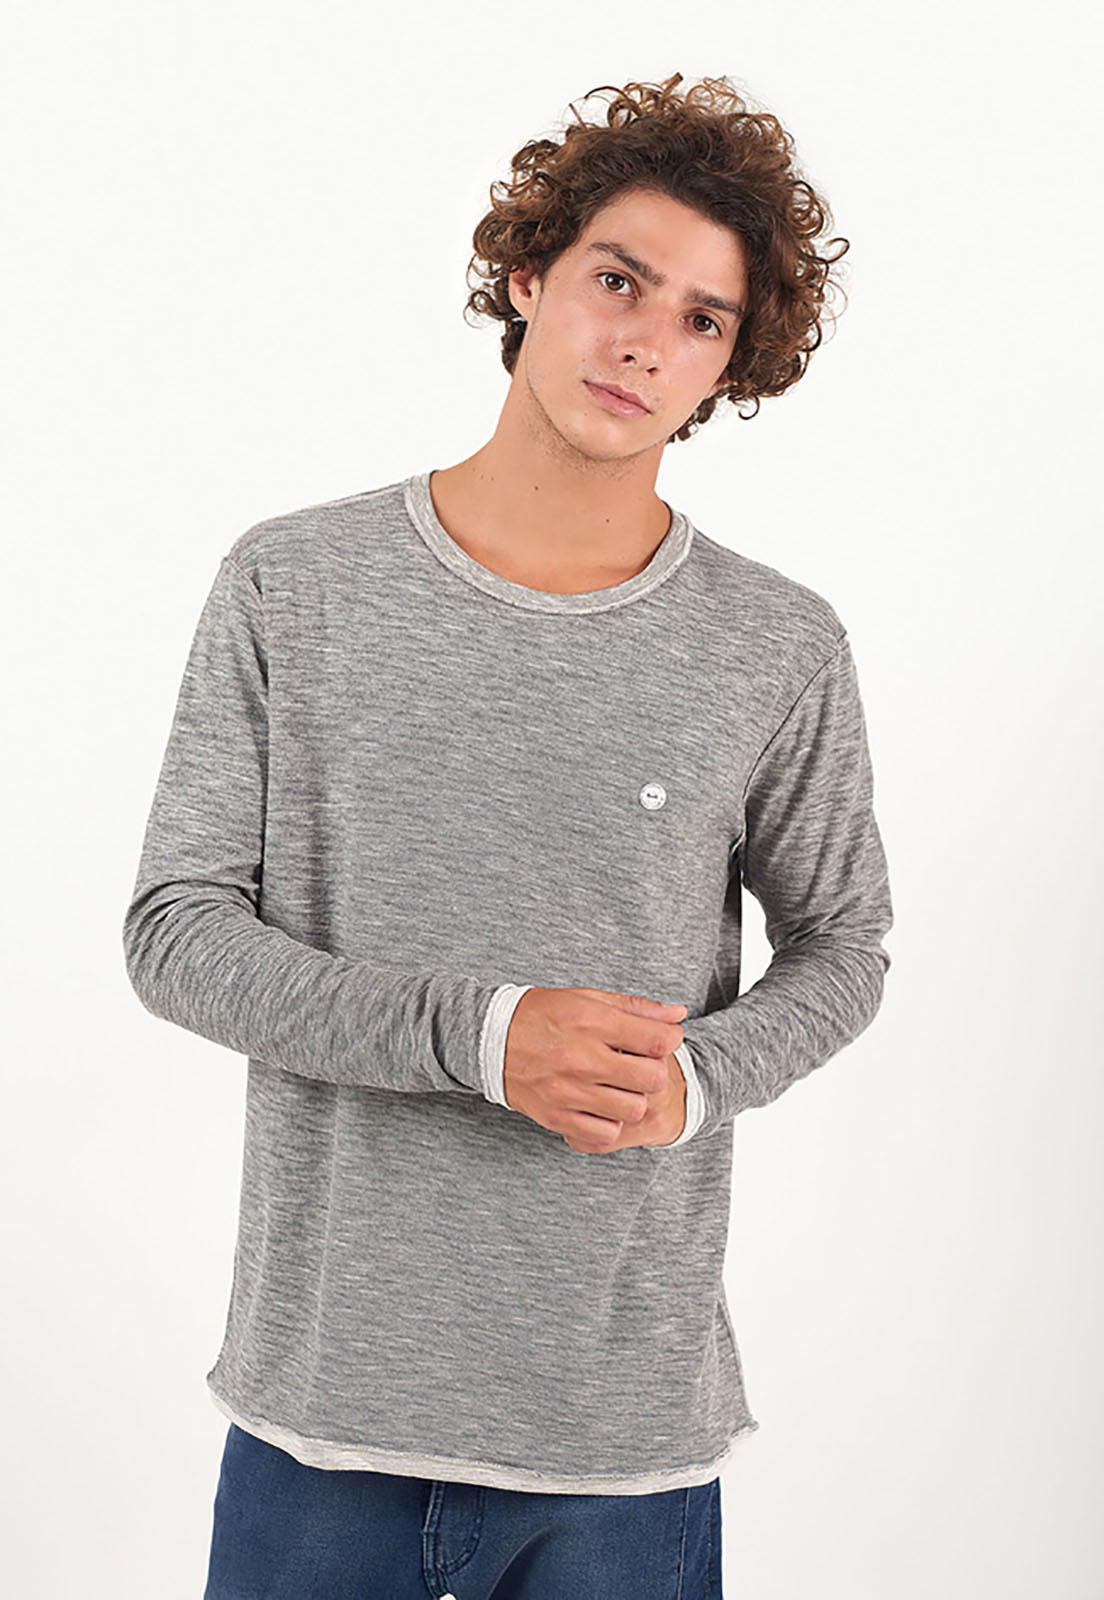 Blusa Adventure Riders melty  - melty surf & Co.